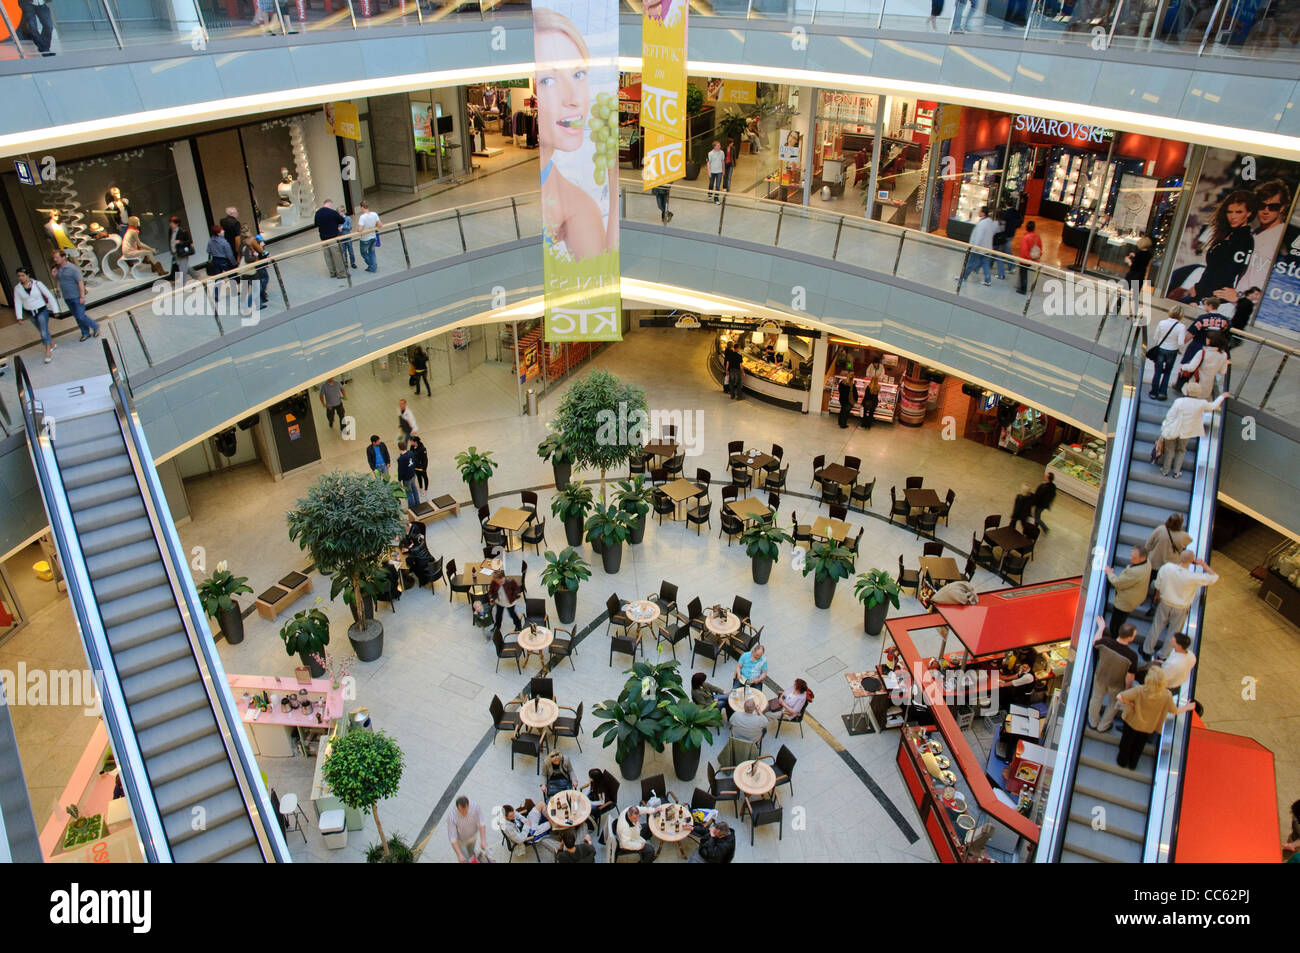 Rostock Shopping Rostock Shopping